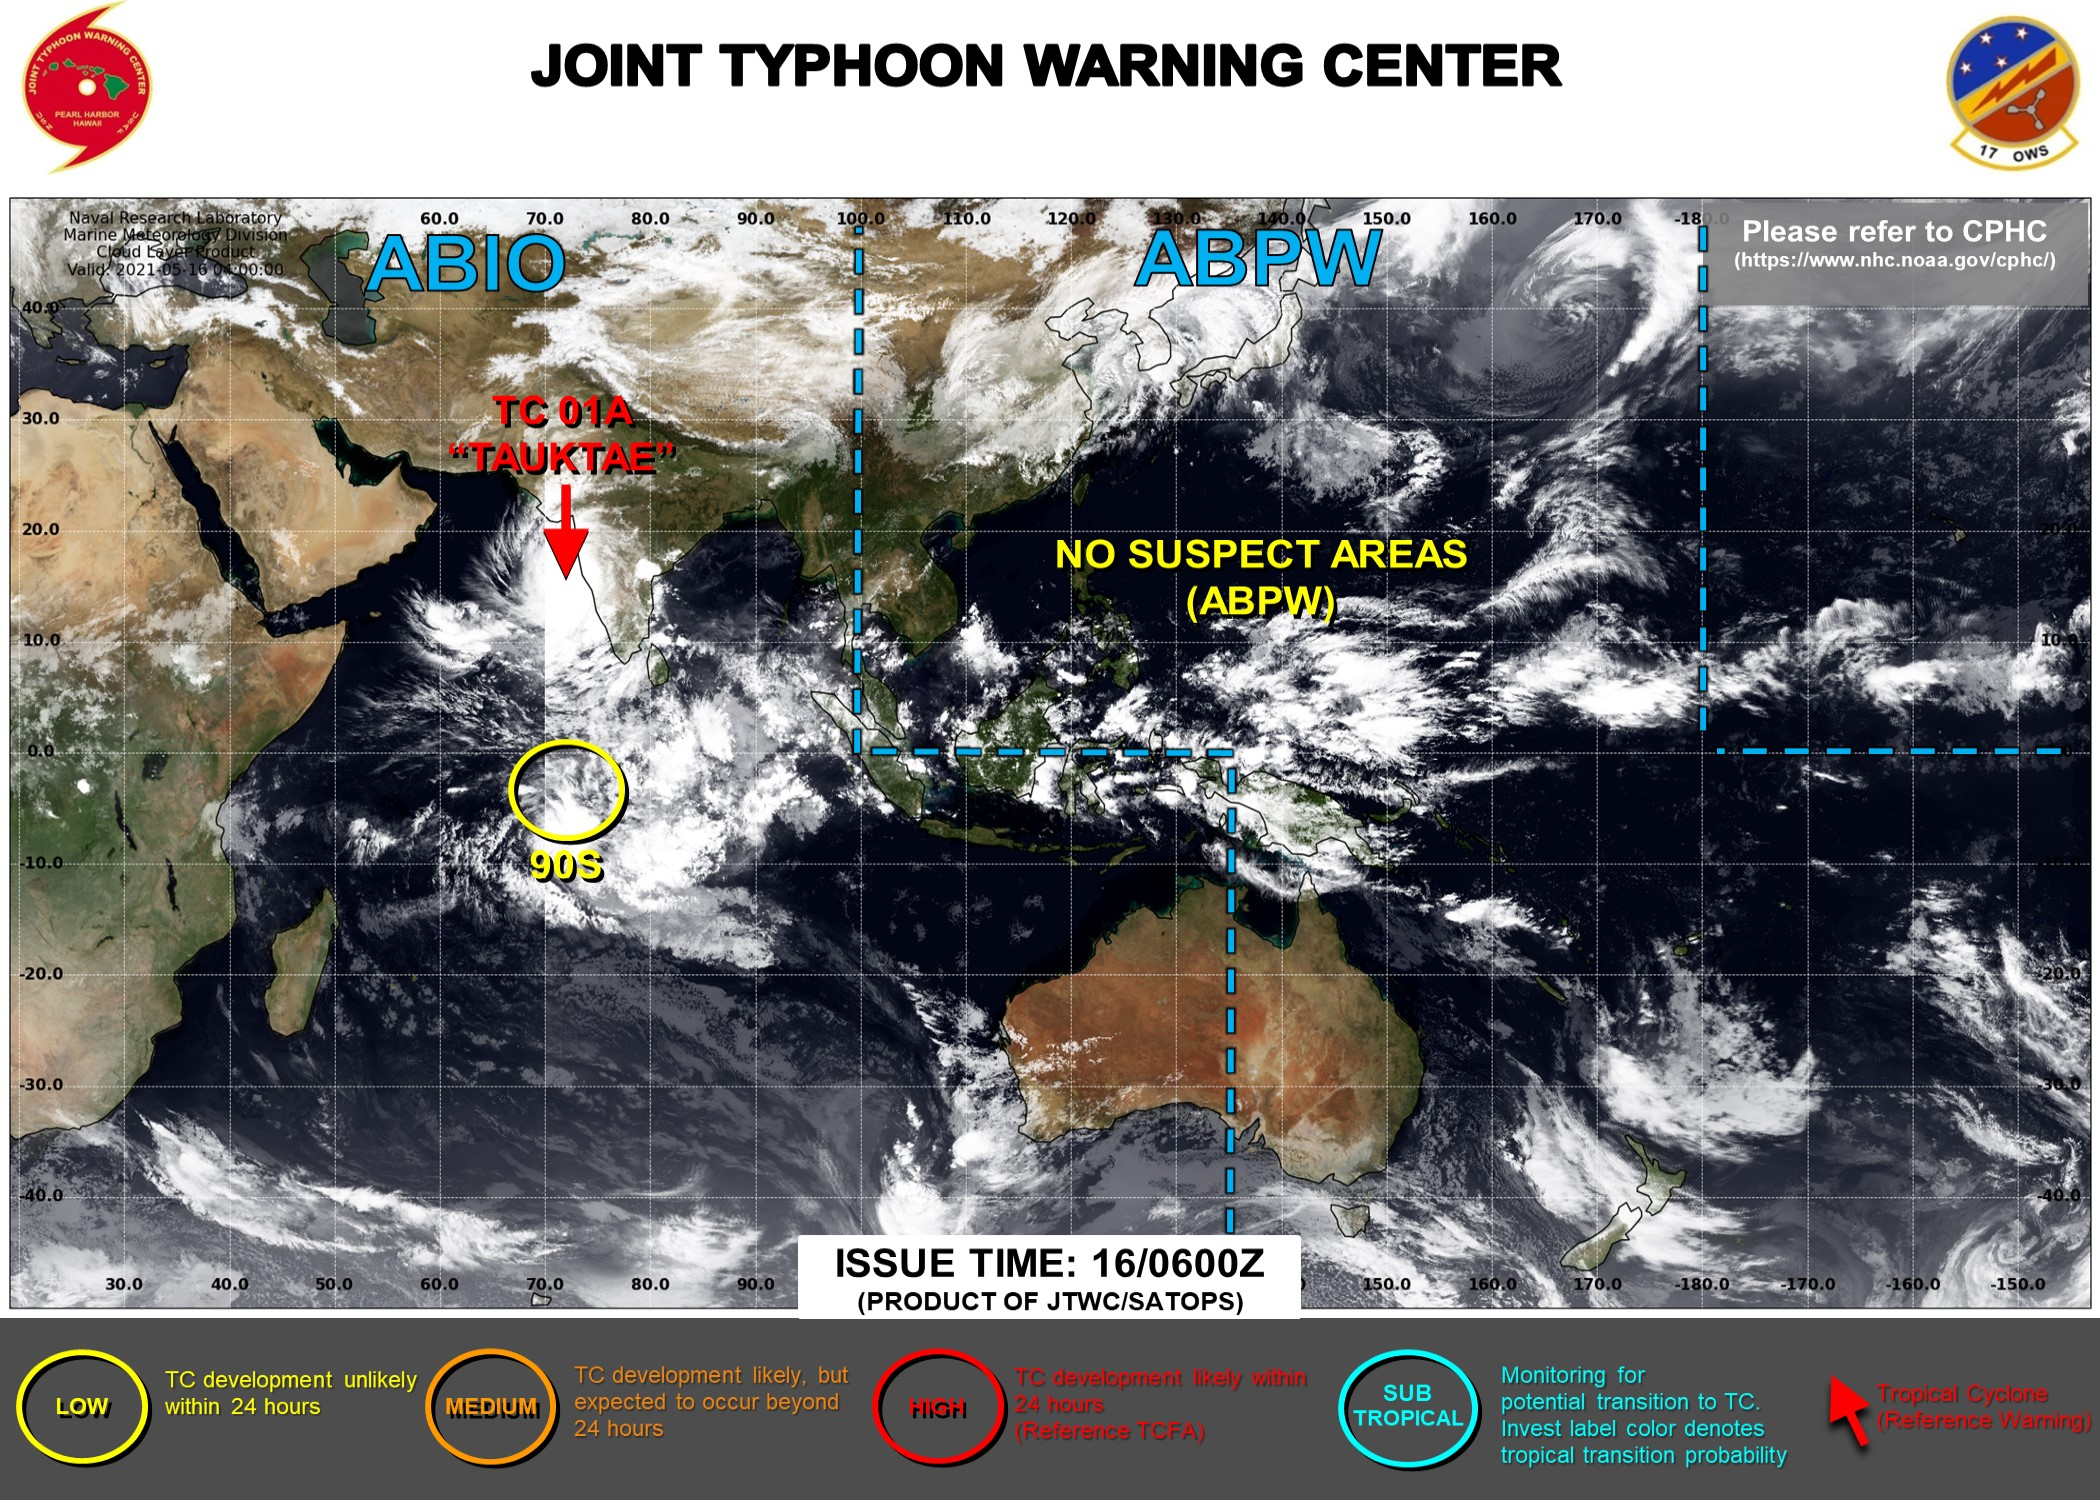 JTWC IS ISSUING 6HOURLY WARNINGS ON TC 01A AND 3HOURLY SATELLITE BULLETINS. INVEST 90S IS NOW ON THE MAP: LOW CHANCES OF HAVING 35KNOT WINDS CLOSE TO ITS CENTER WITHIN 24HOURS.